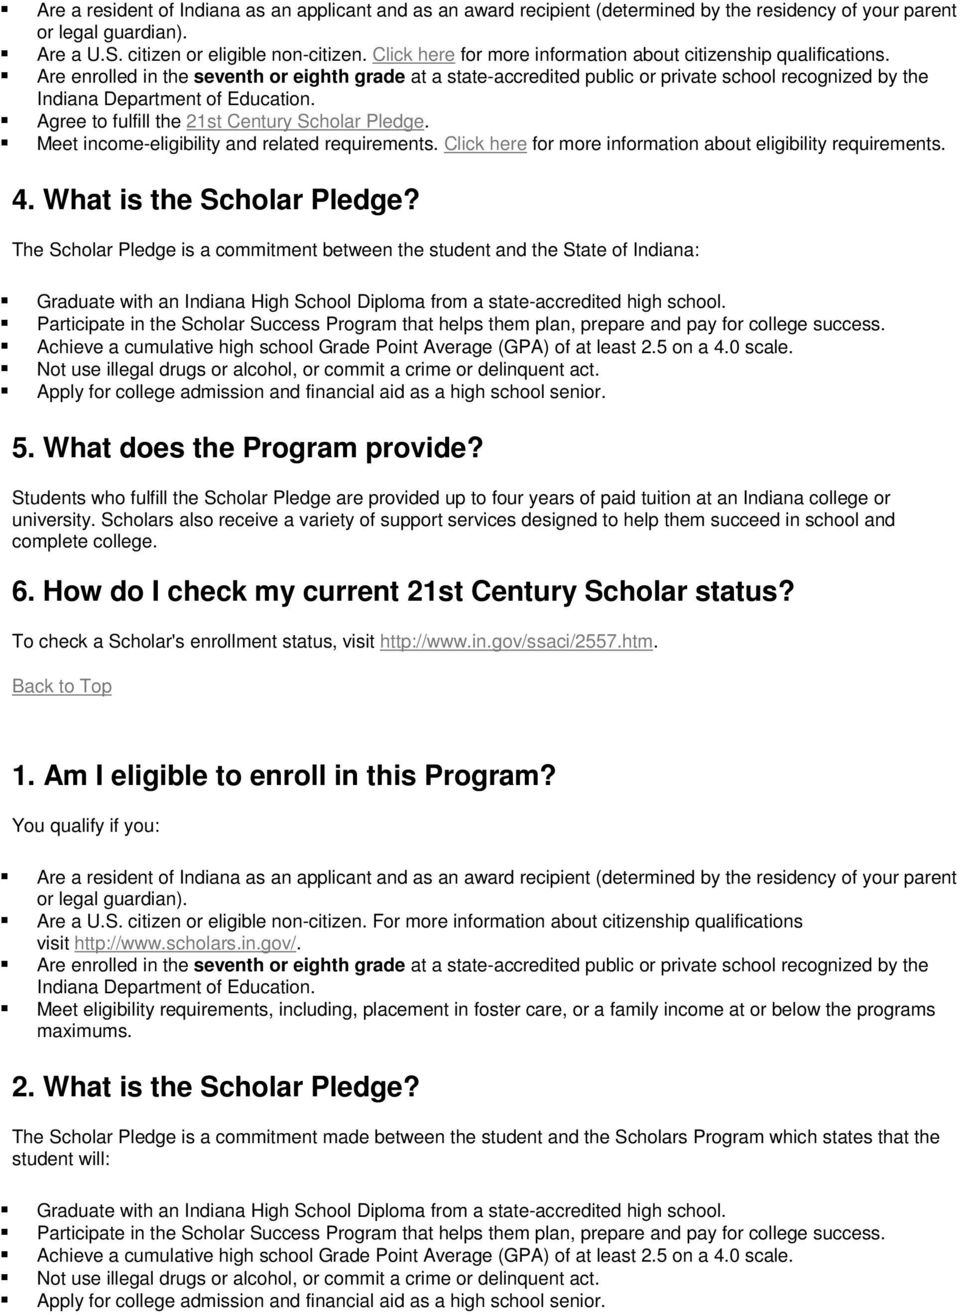 Are enrolled in the seventh or eighth grade at a state-accredited public or private school recognized by the Indiana Department of Education. Agree to fulfill the 21st Century Scholar Pledge.